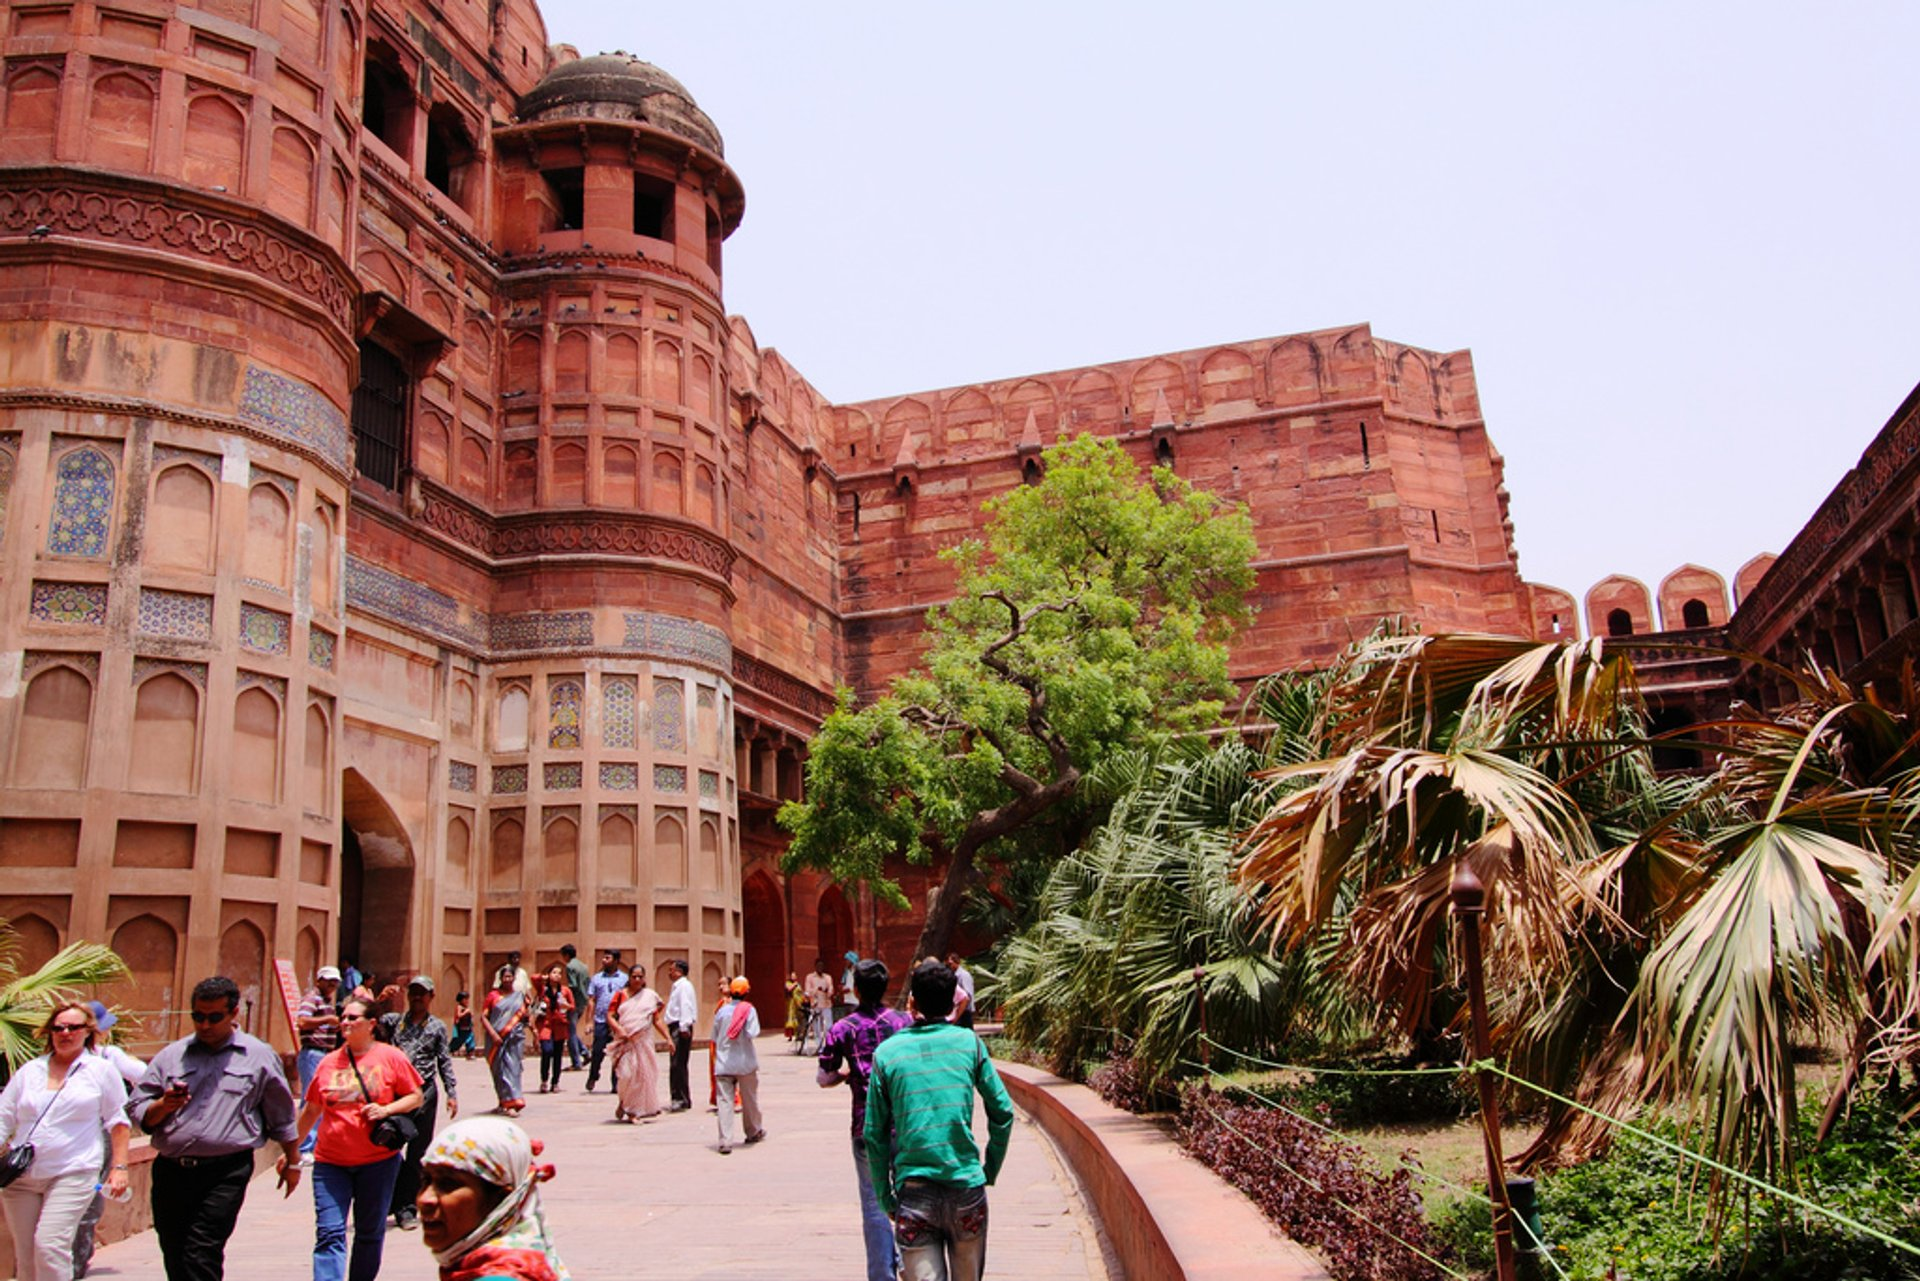 Agra Fort in Taj Mahal and Agra  - Best Season